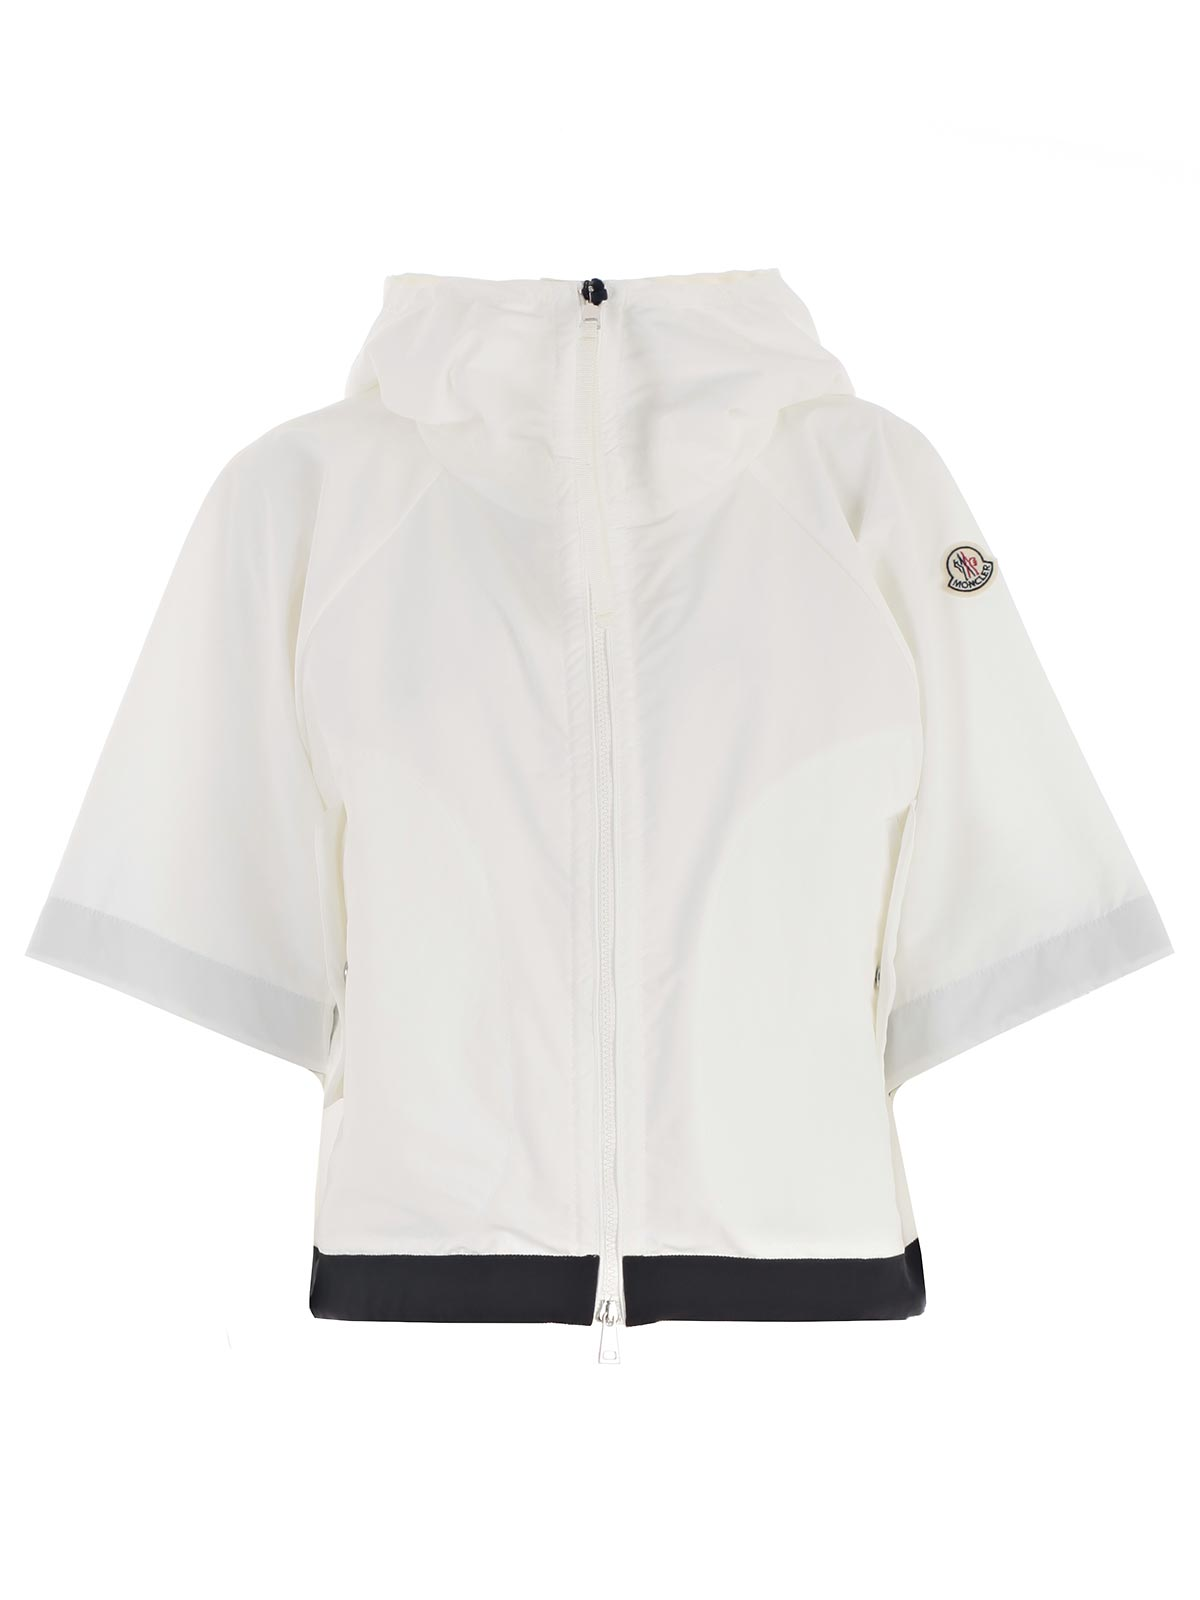 Picture of MONCLER GIUBBOTTO